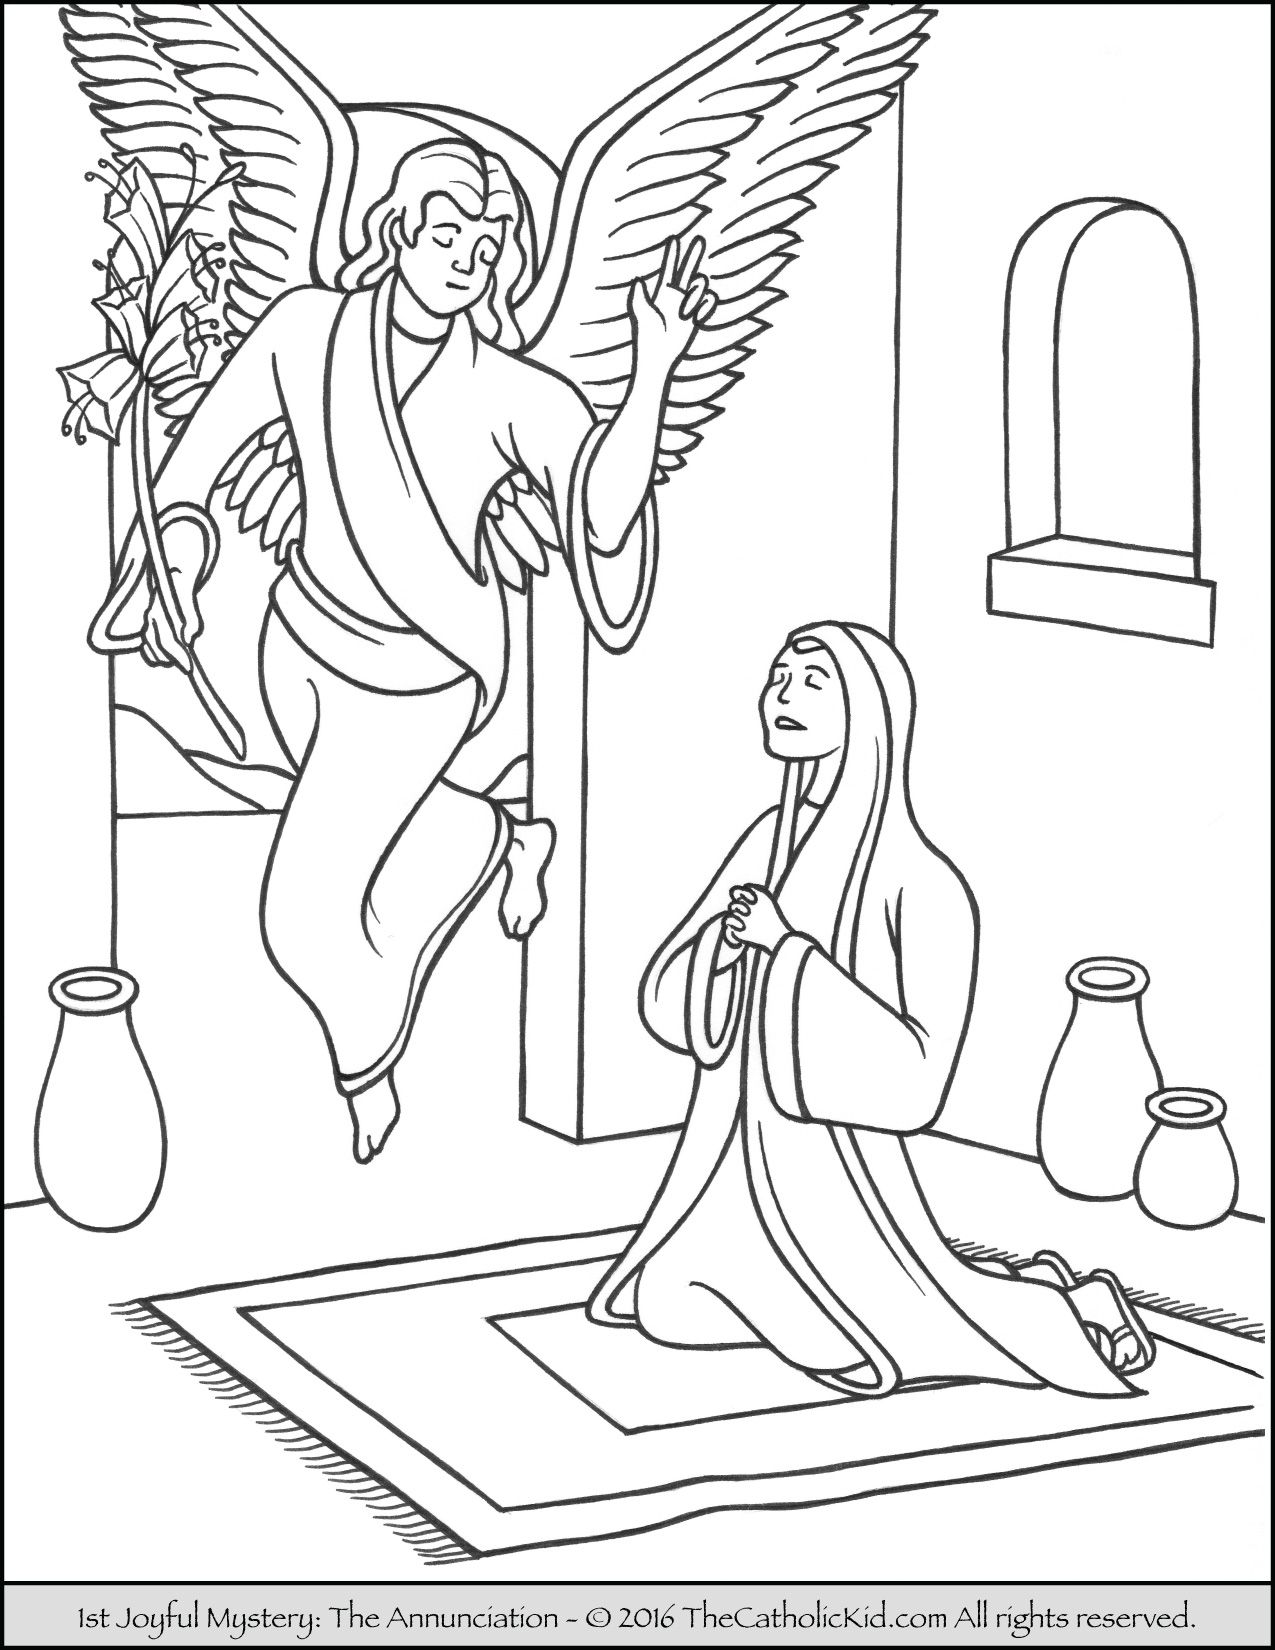 The 1st Joyful Mystery Coloring Page - Annunciation | Joyful ...